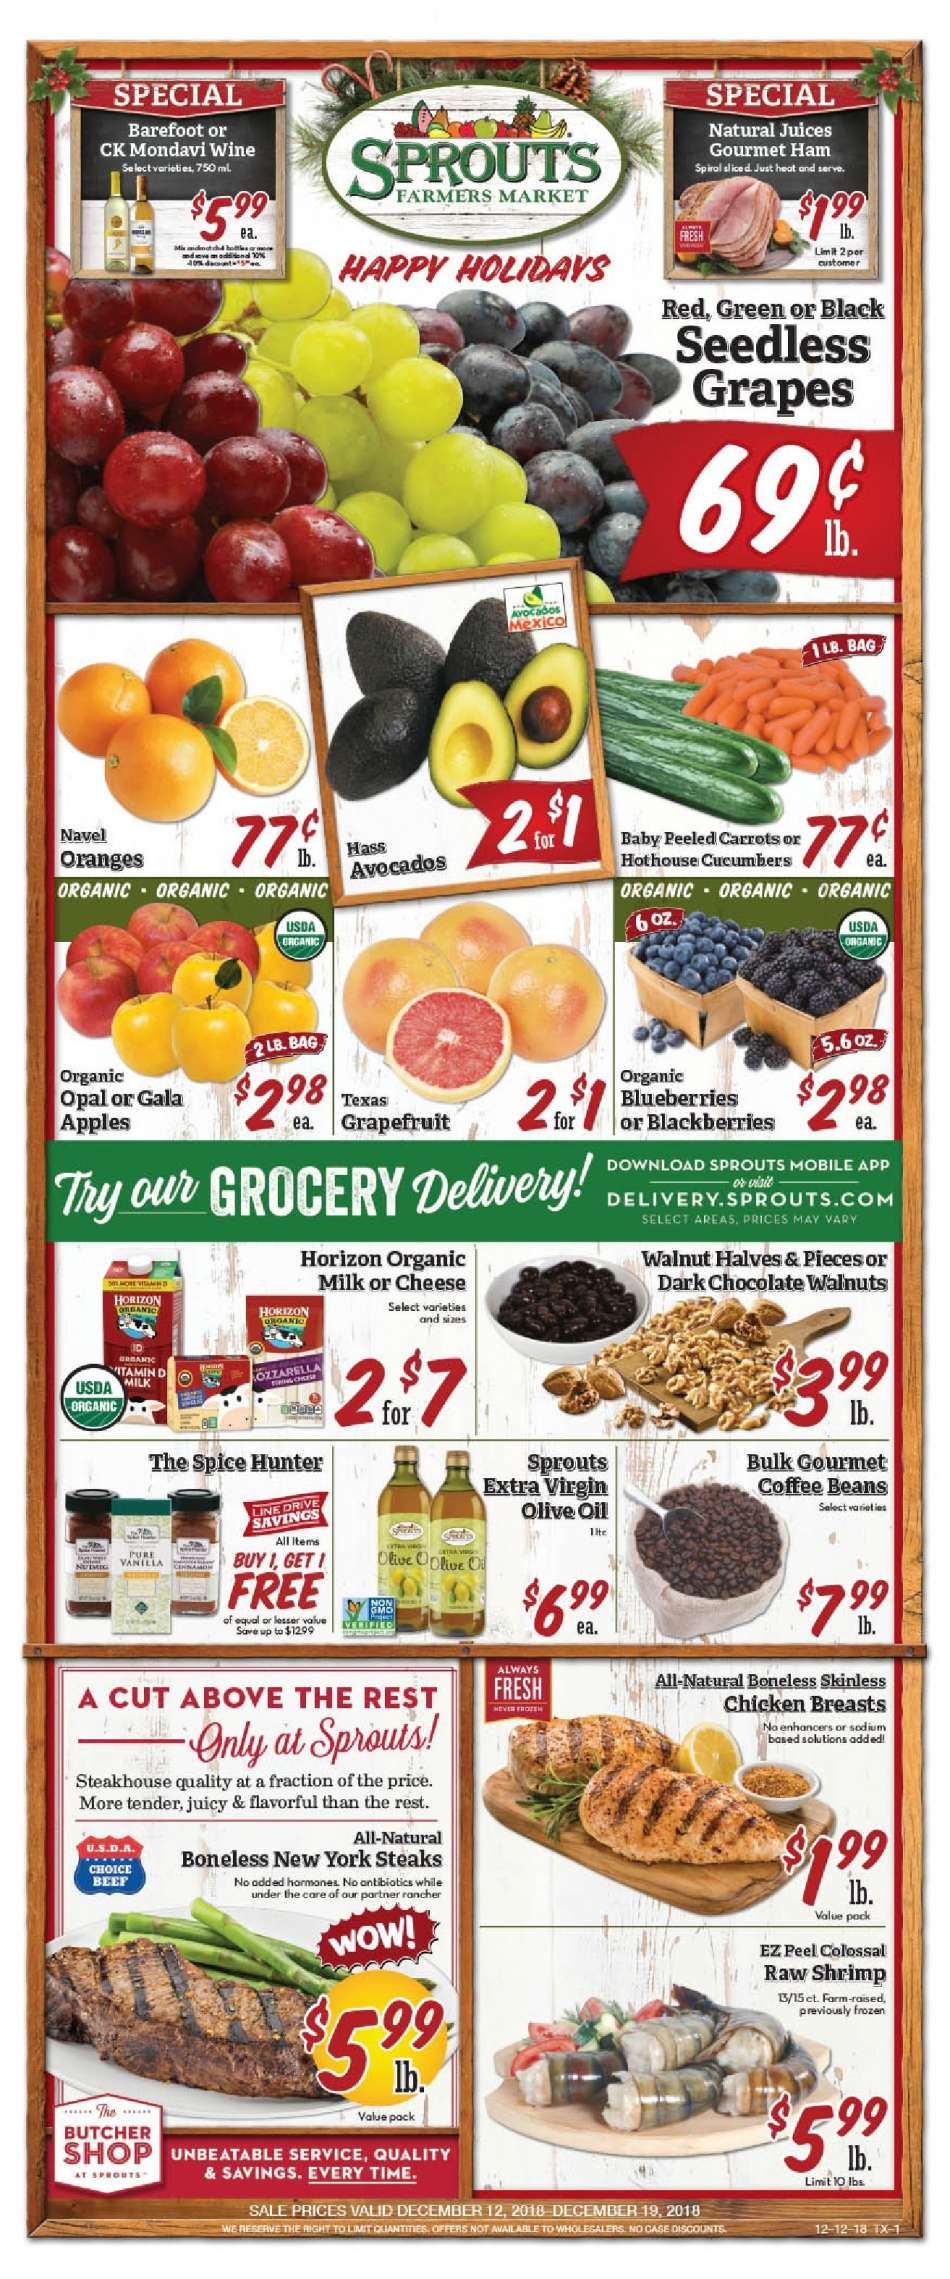 Sprouts flyer 12 12 2018 - 12 19 2018 | Weekly-ads us